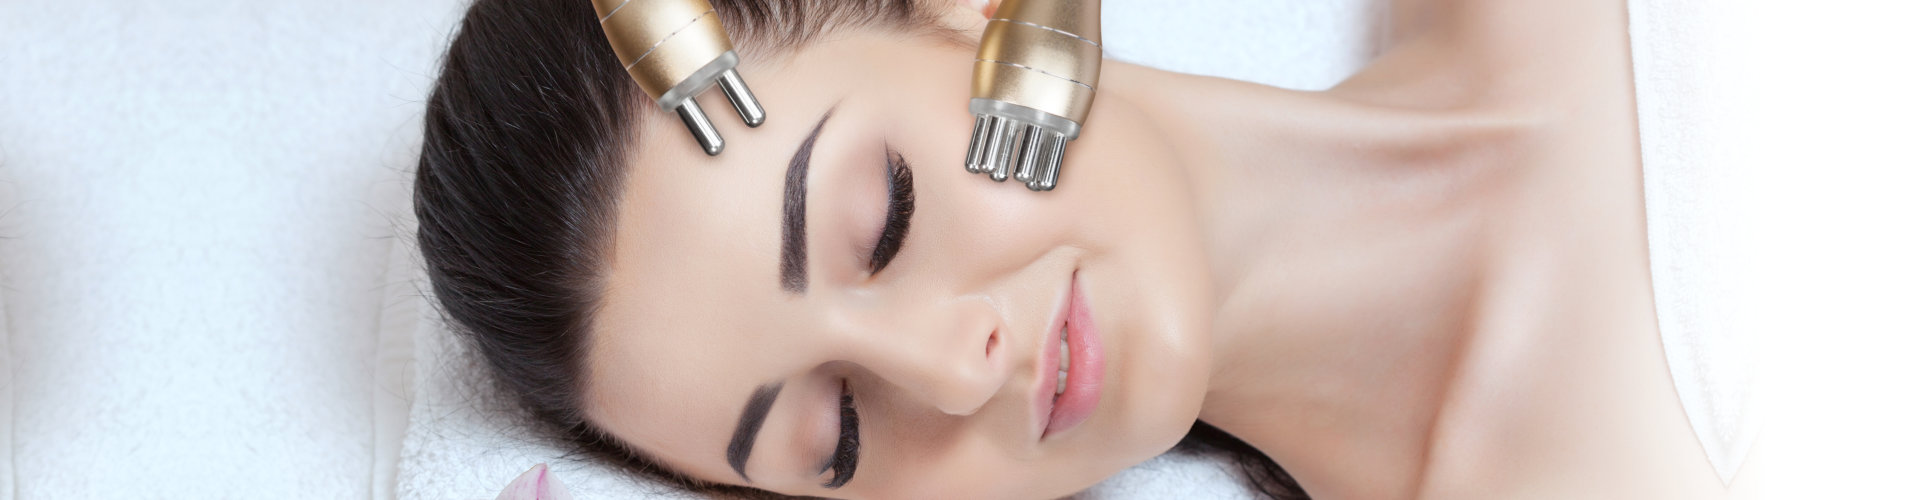 Rf lifting procedure in a beauty parlour